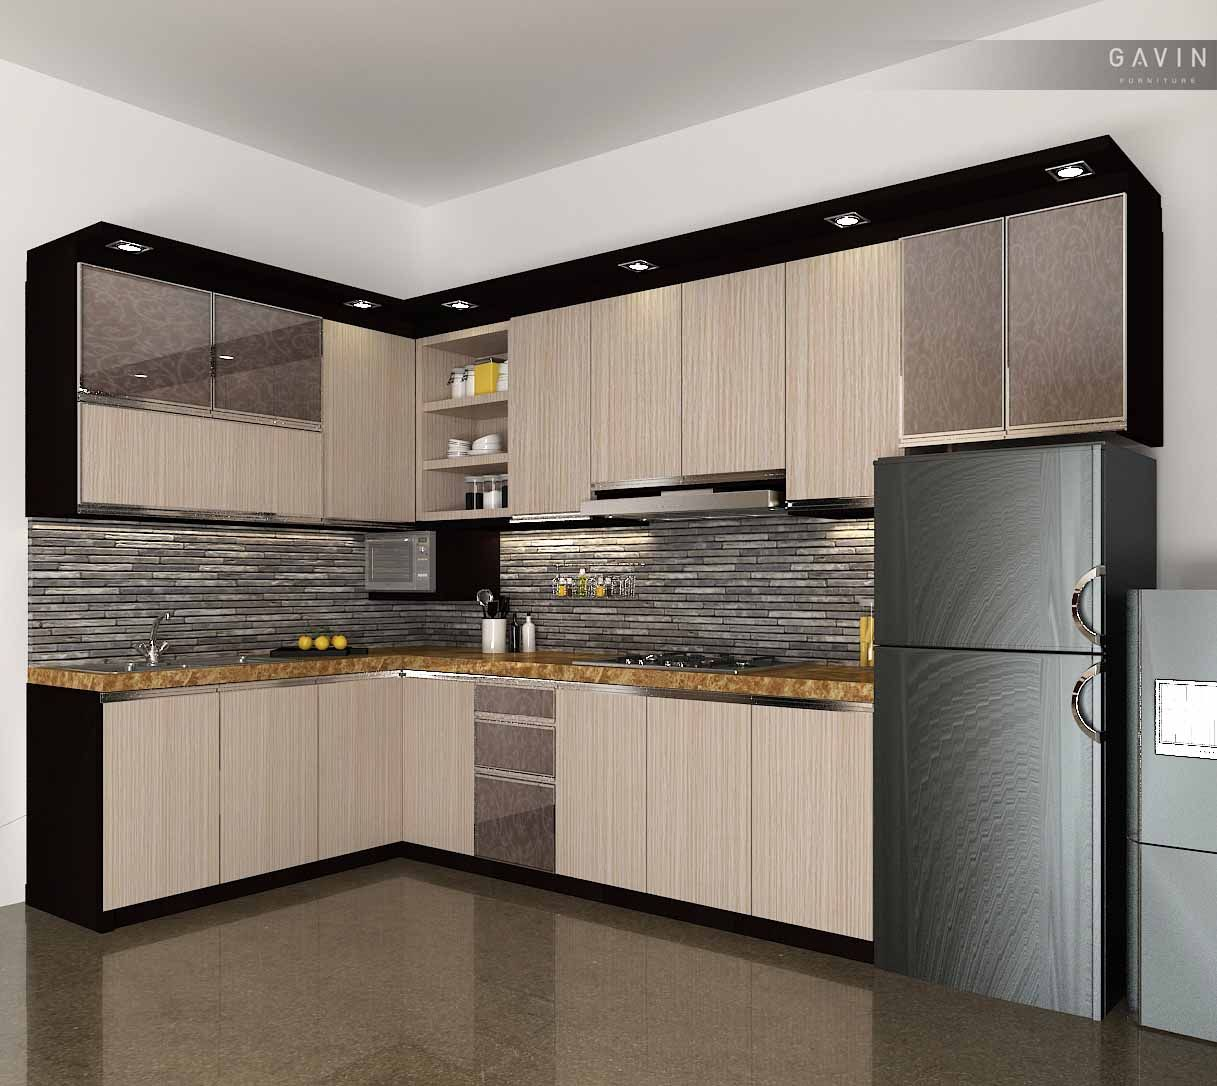 Pinterest Kitchen Set: Desain Kitchen Set Minimalis HPL Di Kemanggisan